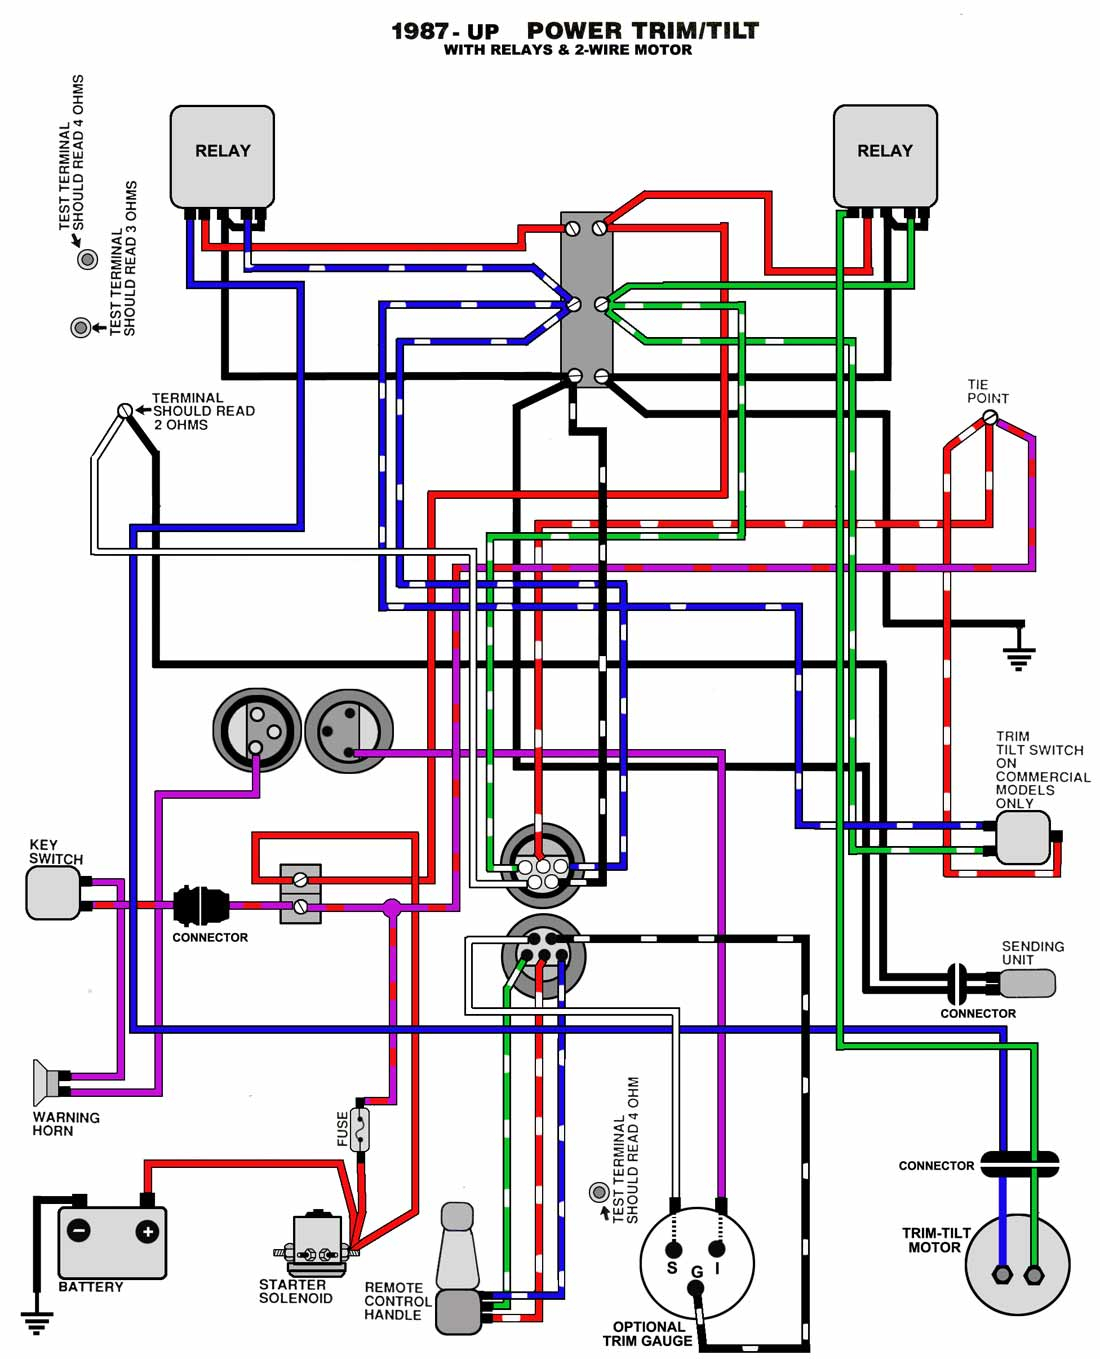 Boat Trim Switch Wiring Diagram Just Another Blog Ski Nautique Harness Gallery Of Tilt And Sample Rh Worldvisionsummerfest Com Mercruiser Indicator Three Way Switchs